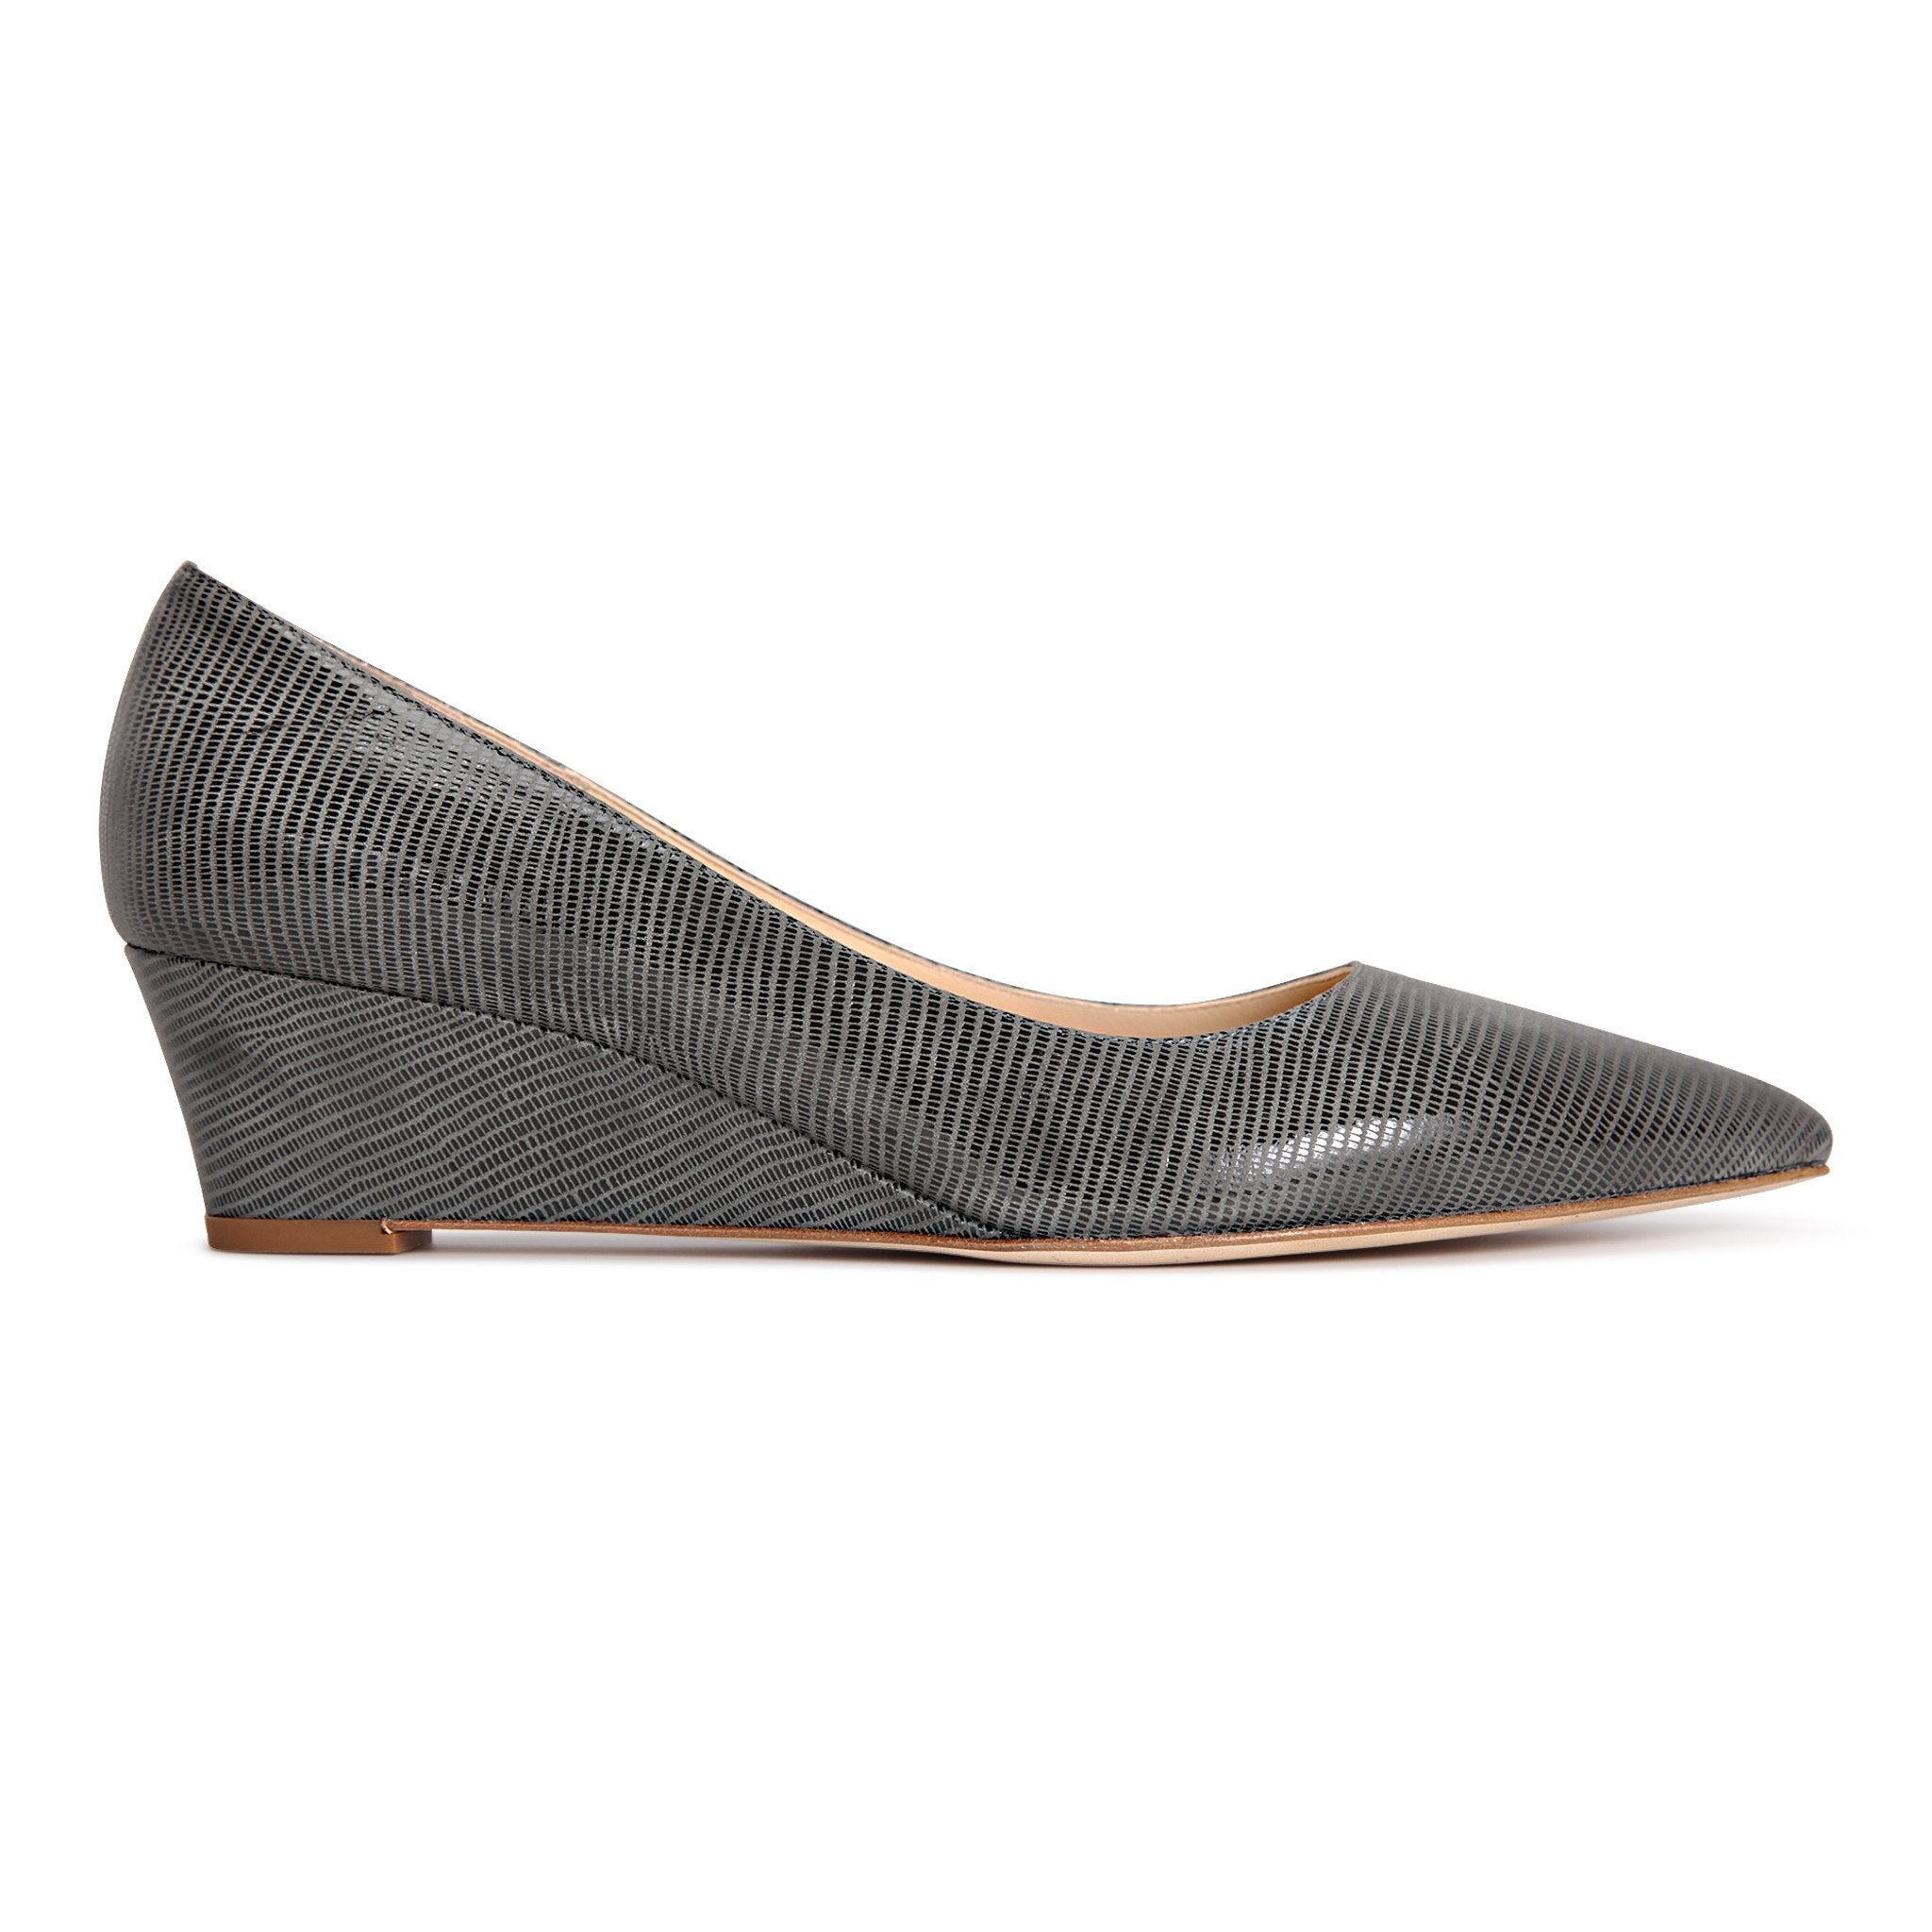 TRENTO - Varanus Anthracite, VIAJIYU - Women's Hand Made Sustainable Luxury Shoes. Made in Italy. Made to Order.